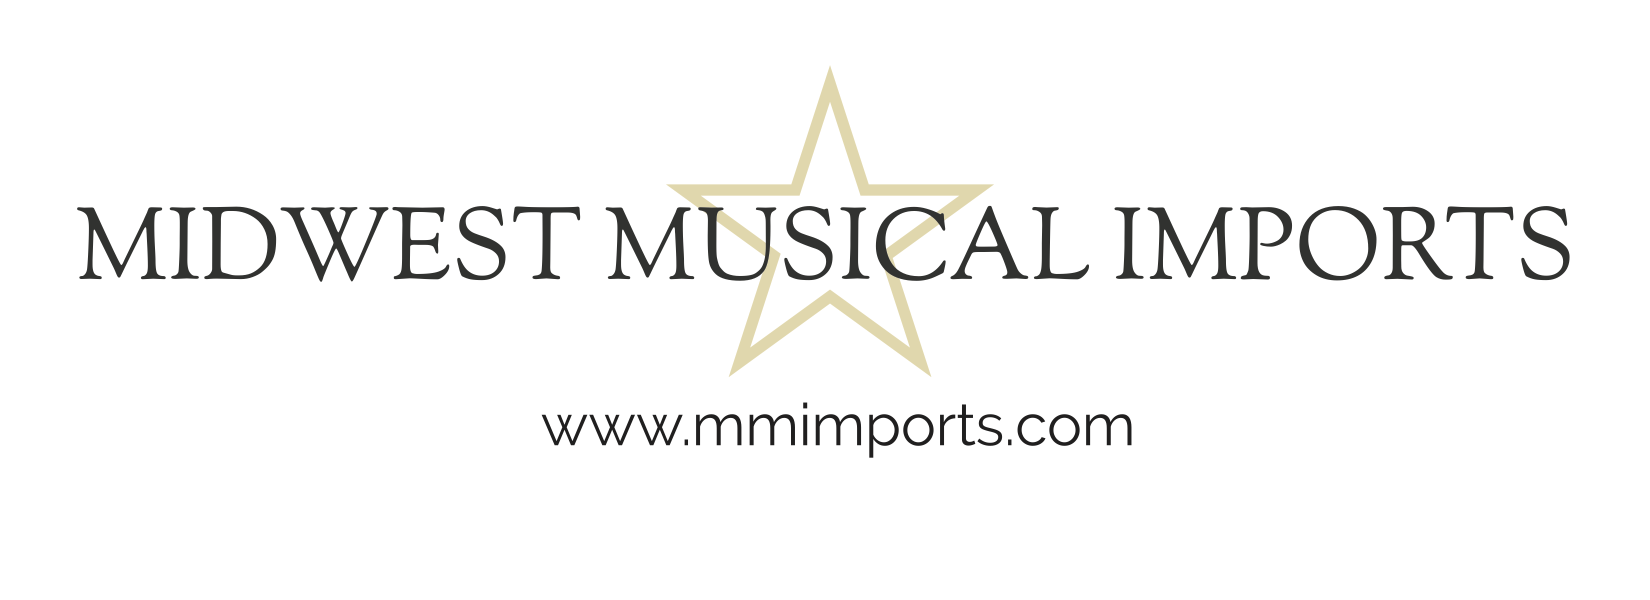 midwestmusicalimports